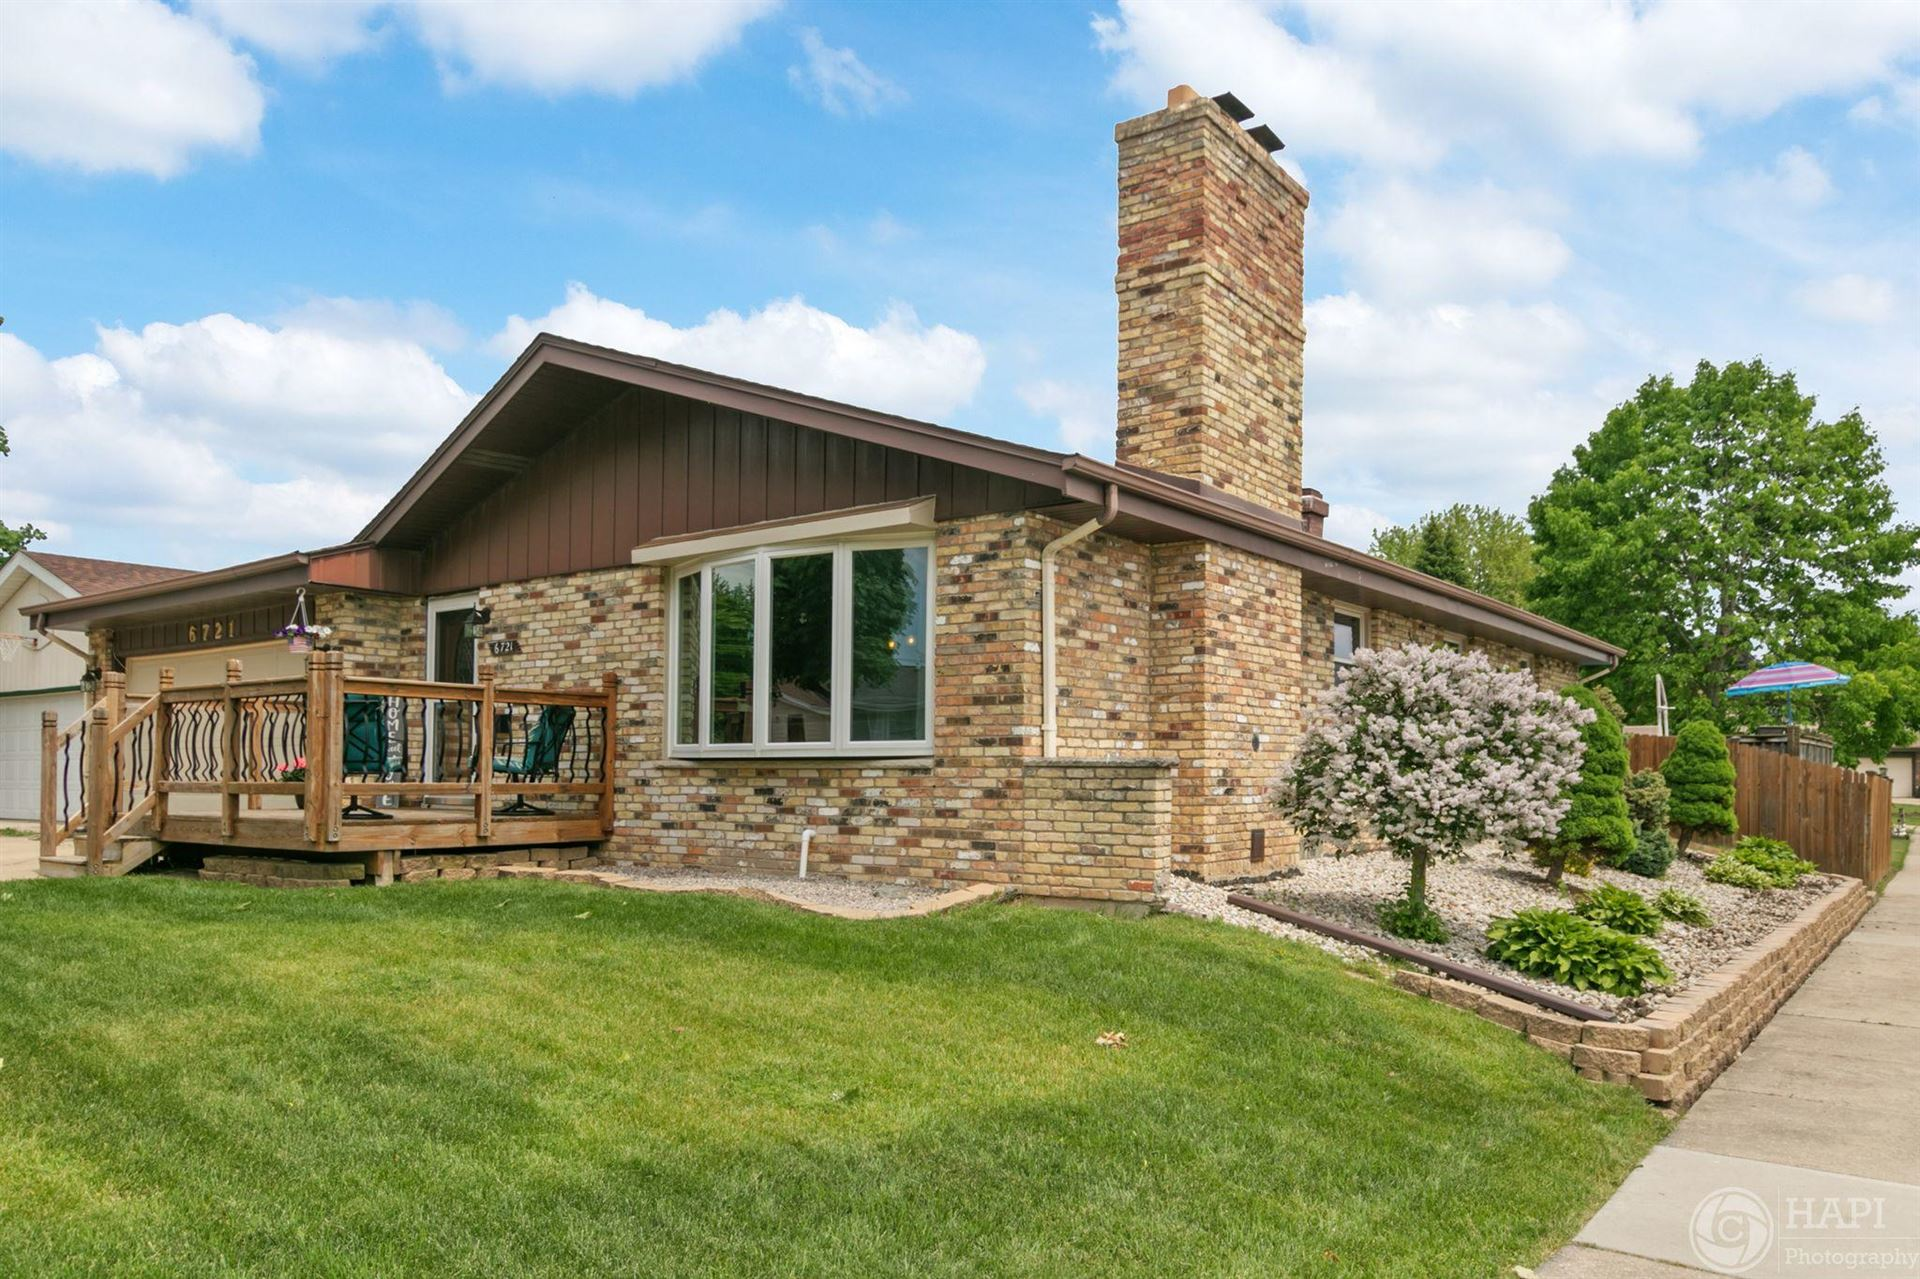 6721 59th Ave, Kenosha, WI 53142 - #: 1690301